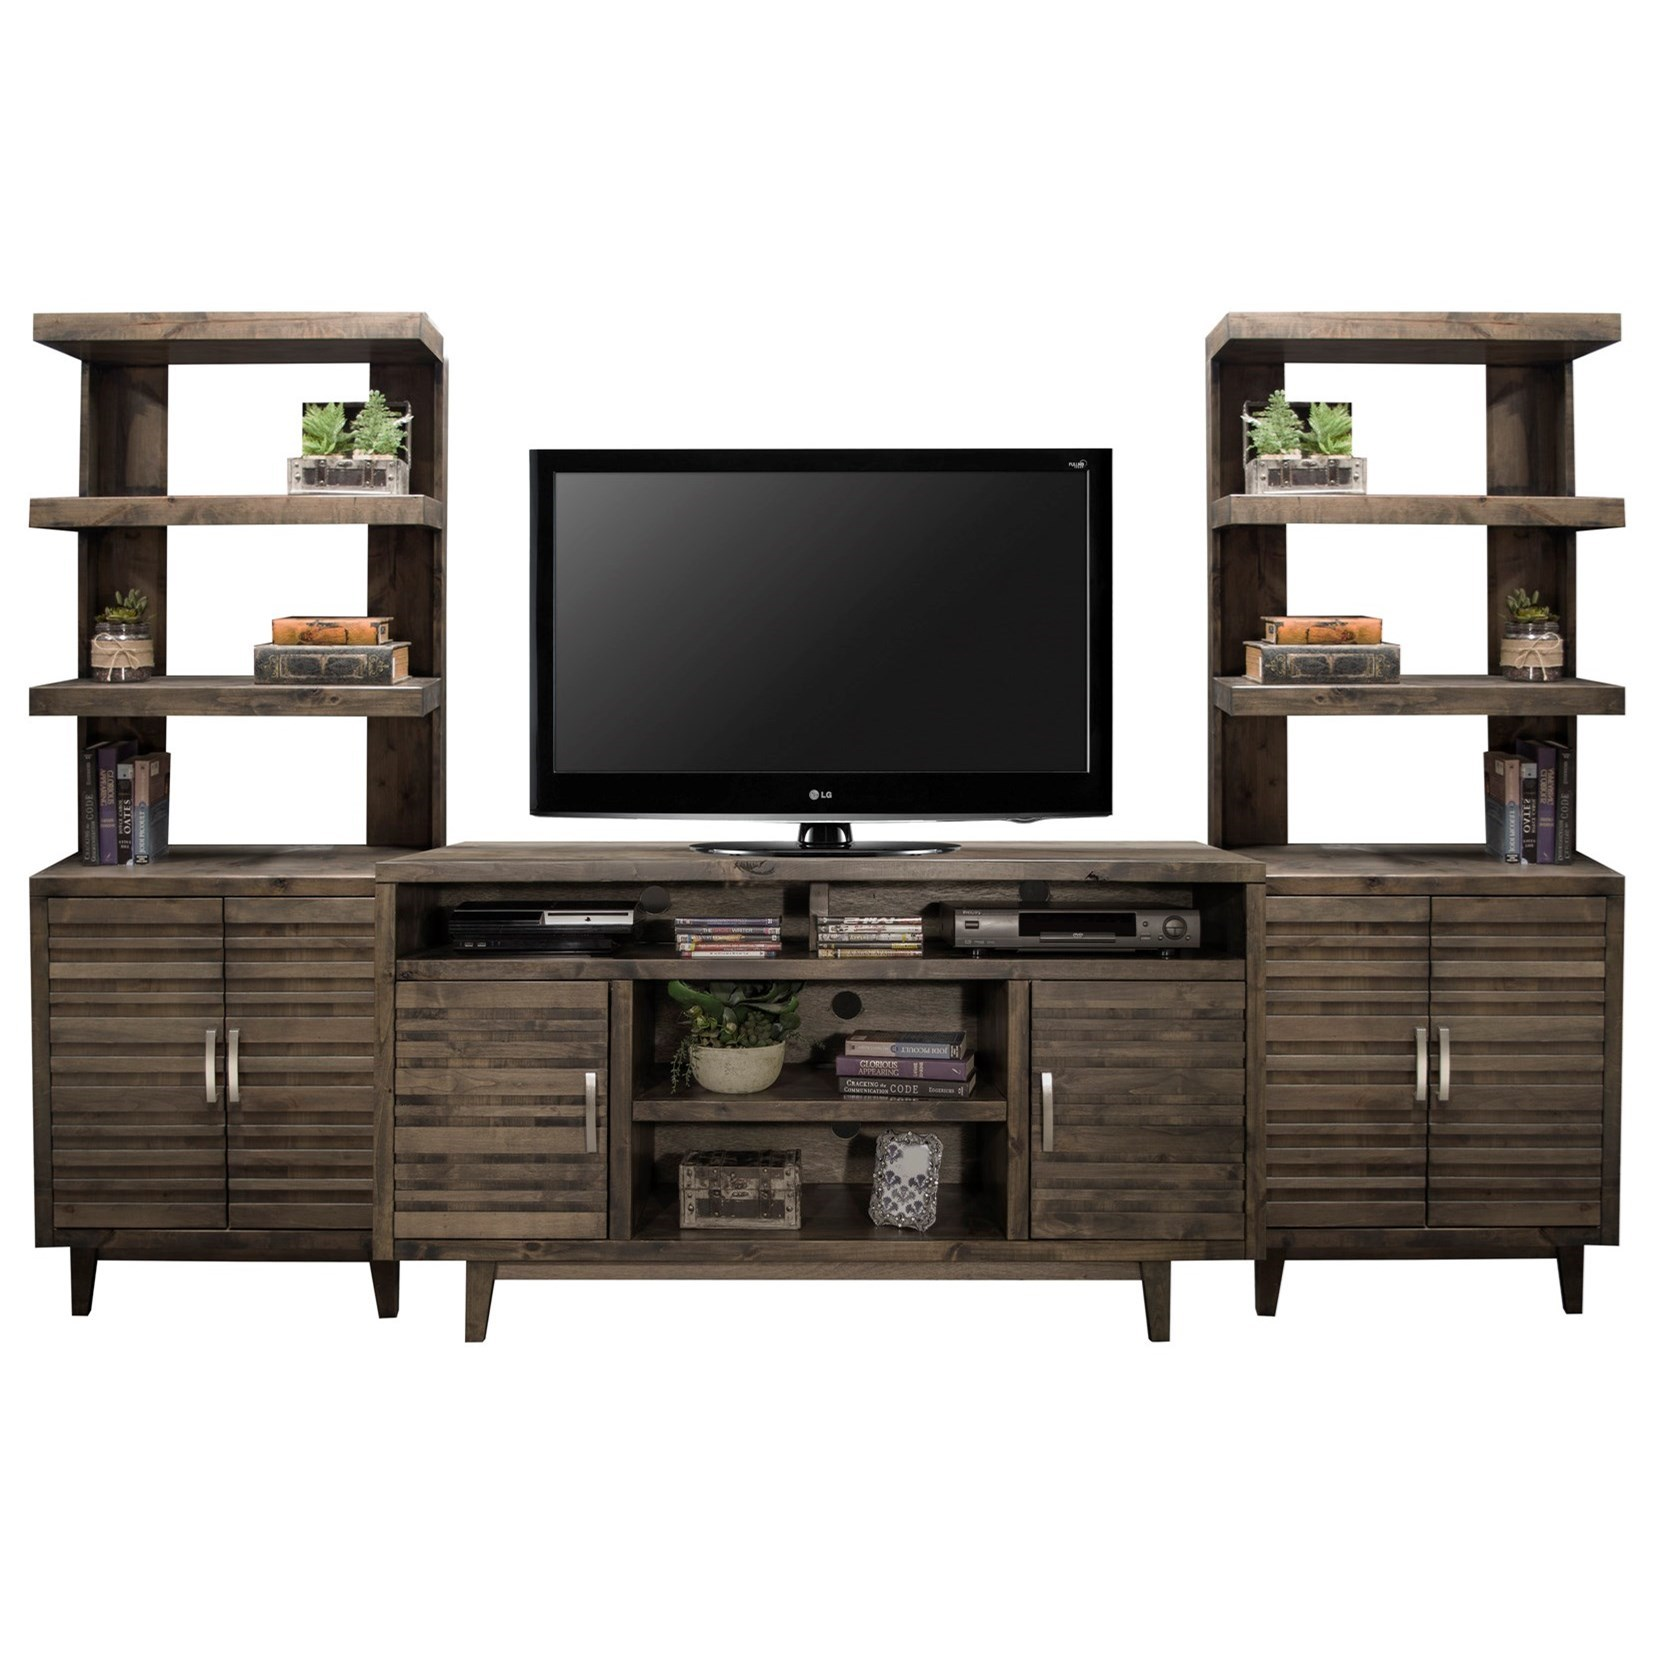 Avondale Entertainment Wall Console by Legends Furniture at EFO Furniture Outlet